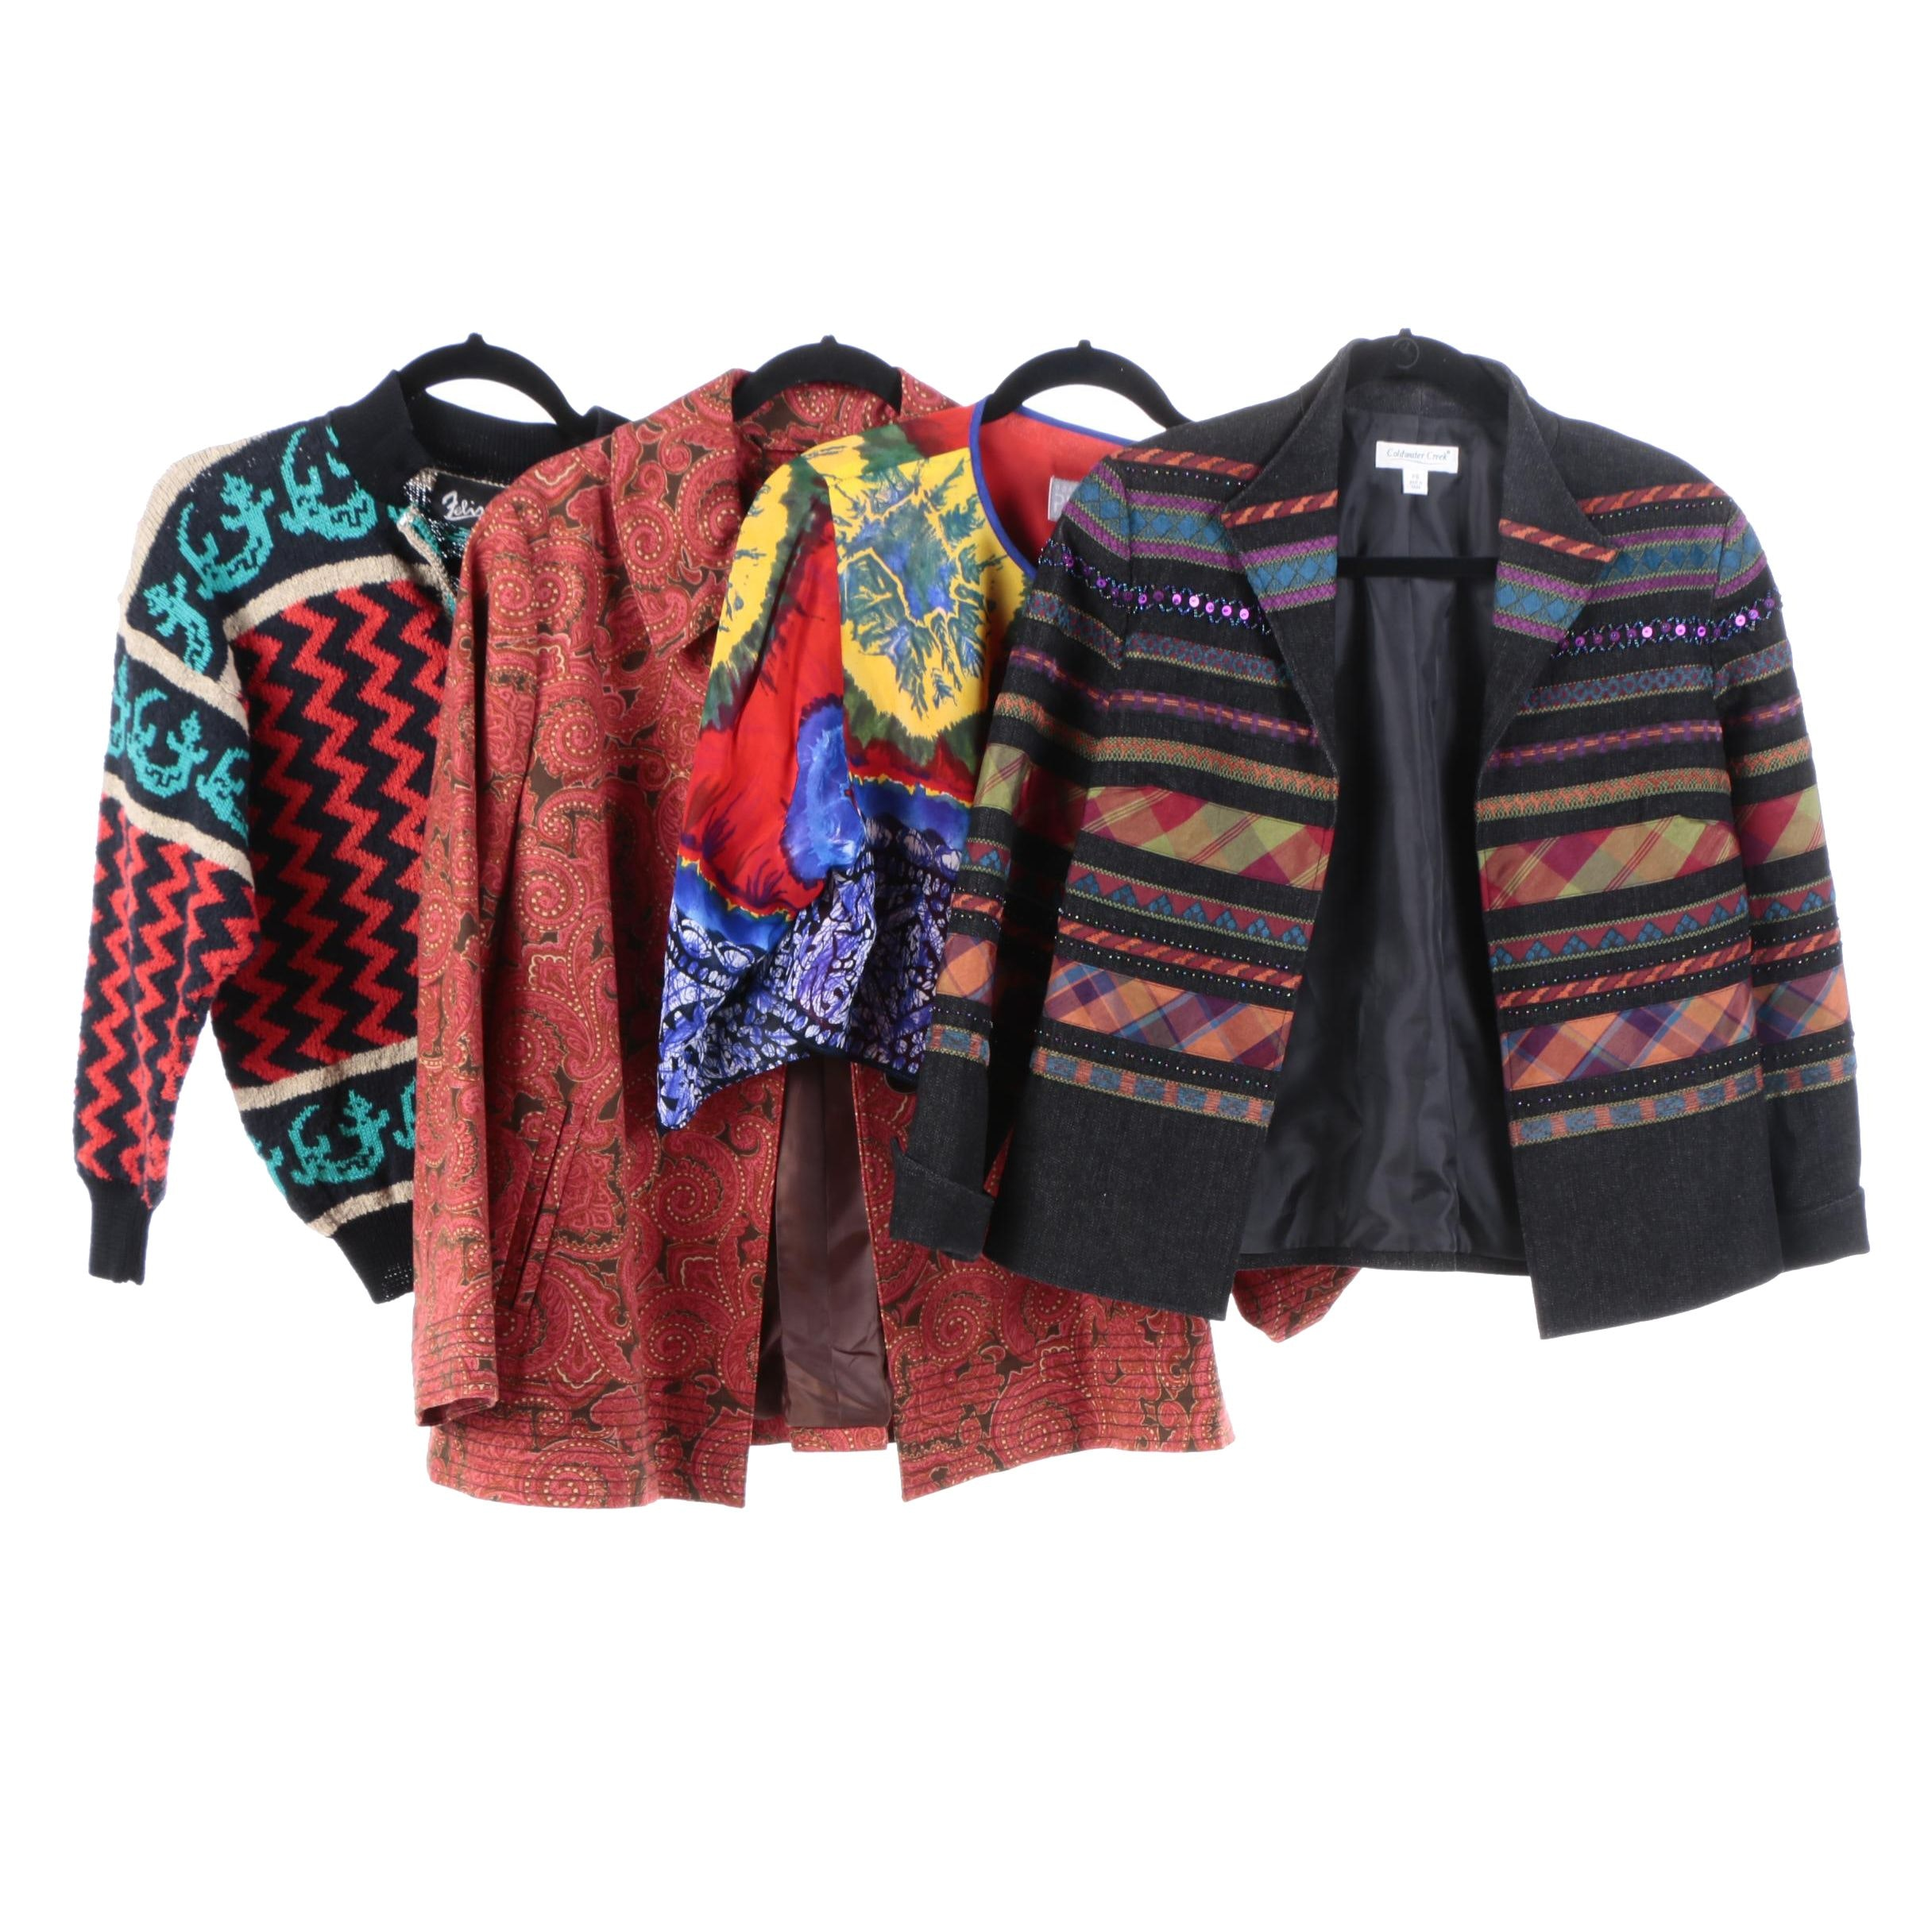 Women's Jackets and Caridgans Including Coldwater Creek and Talbots